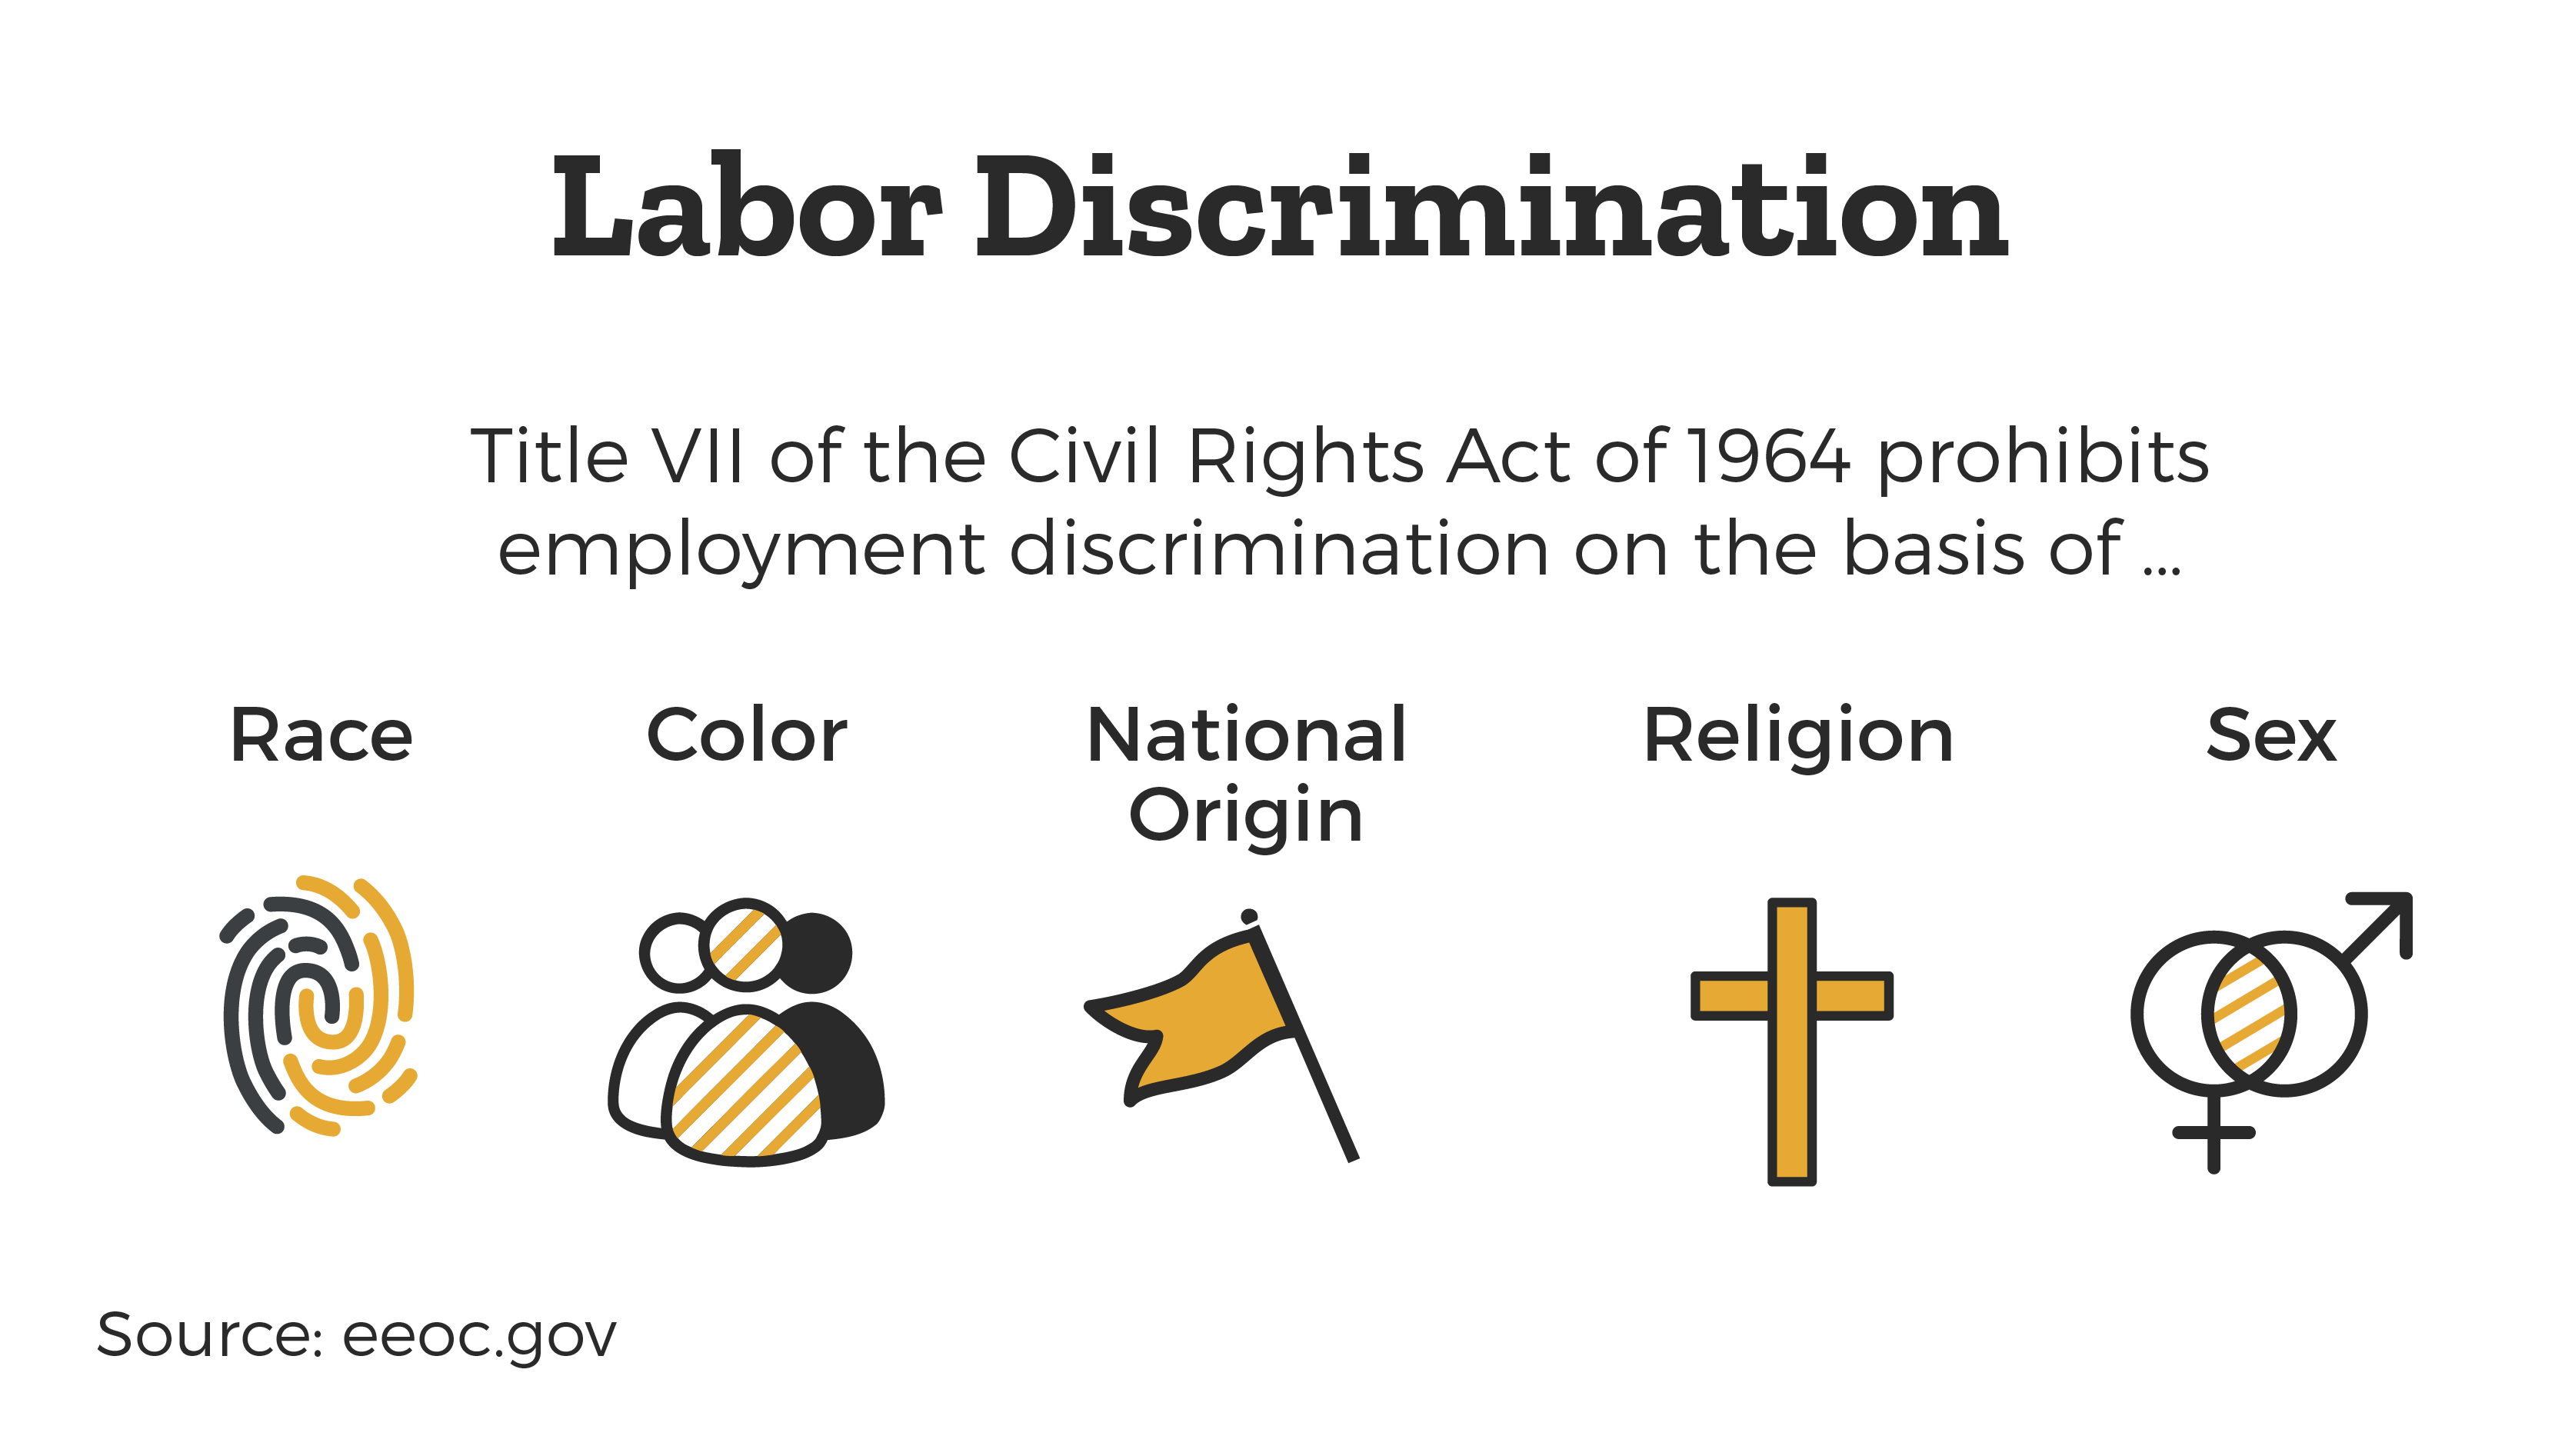 Labor Discrimination, based on Title VII of the civil rights act of 1964 prohibits employment discrimination on the basis of Race, Color, National Origin, Religion, or Sex.